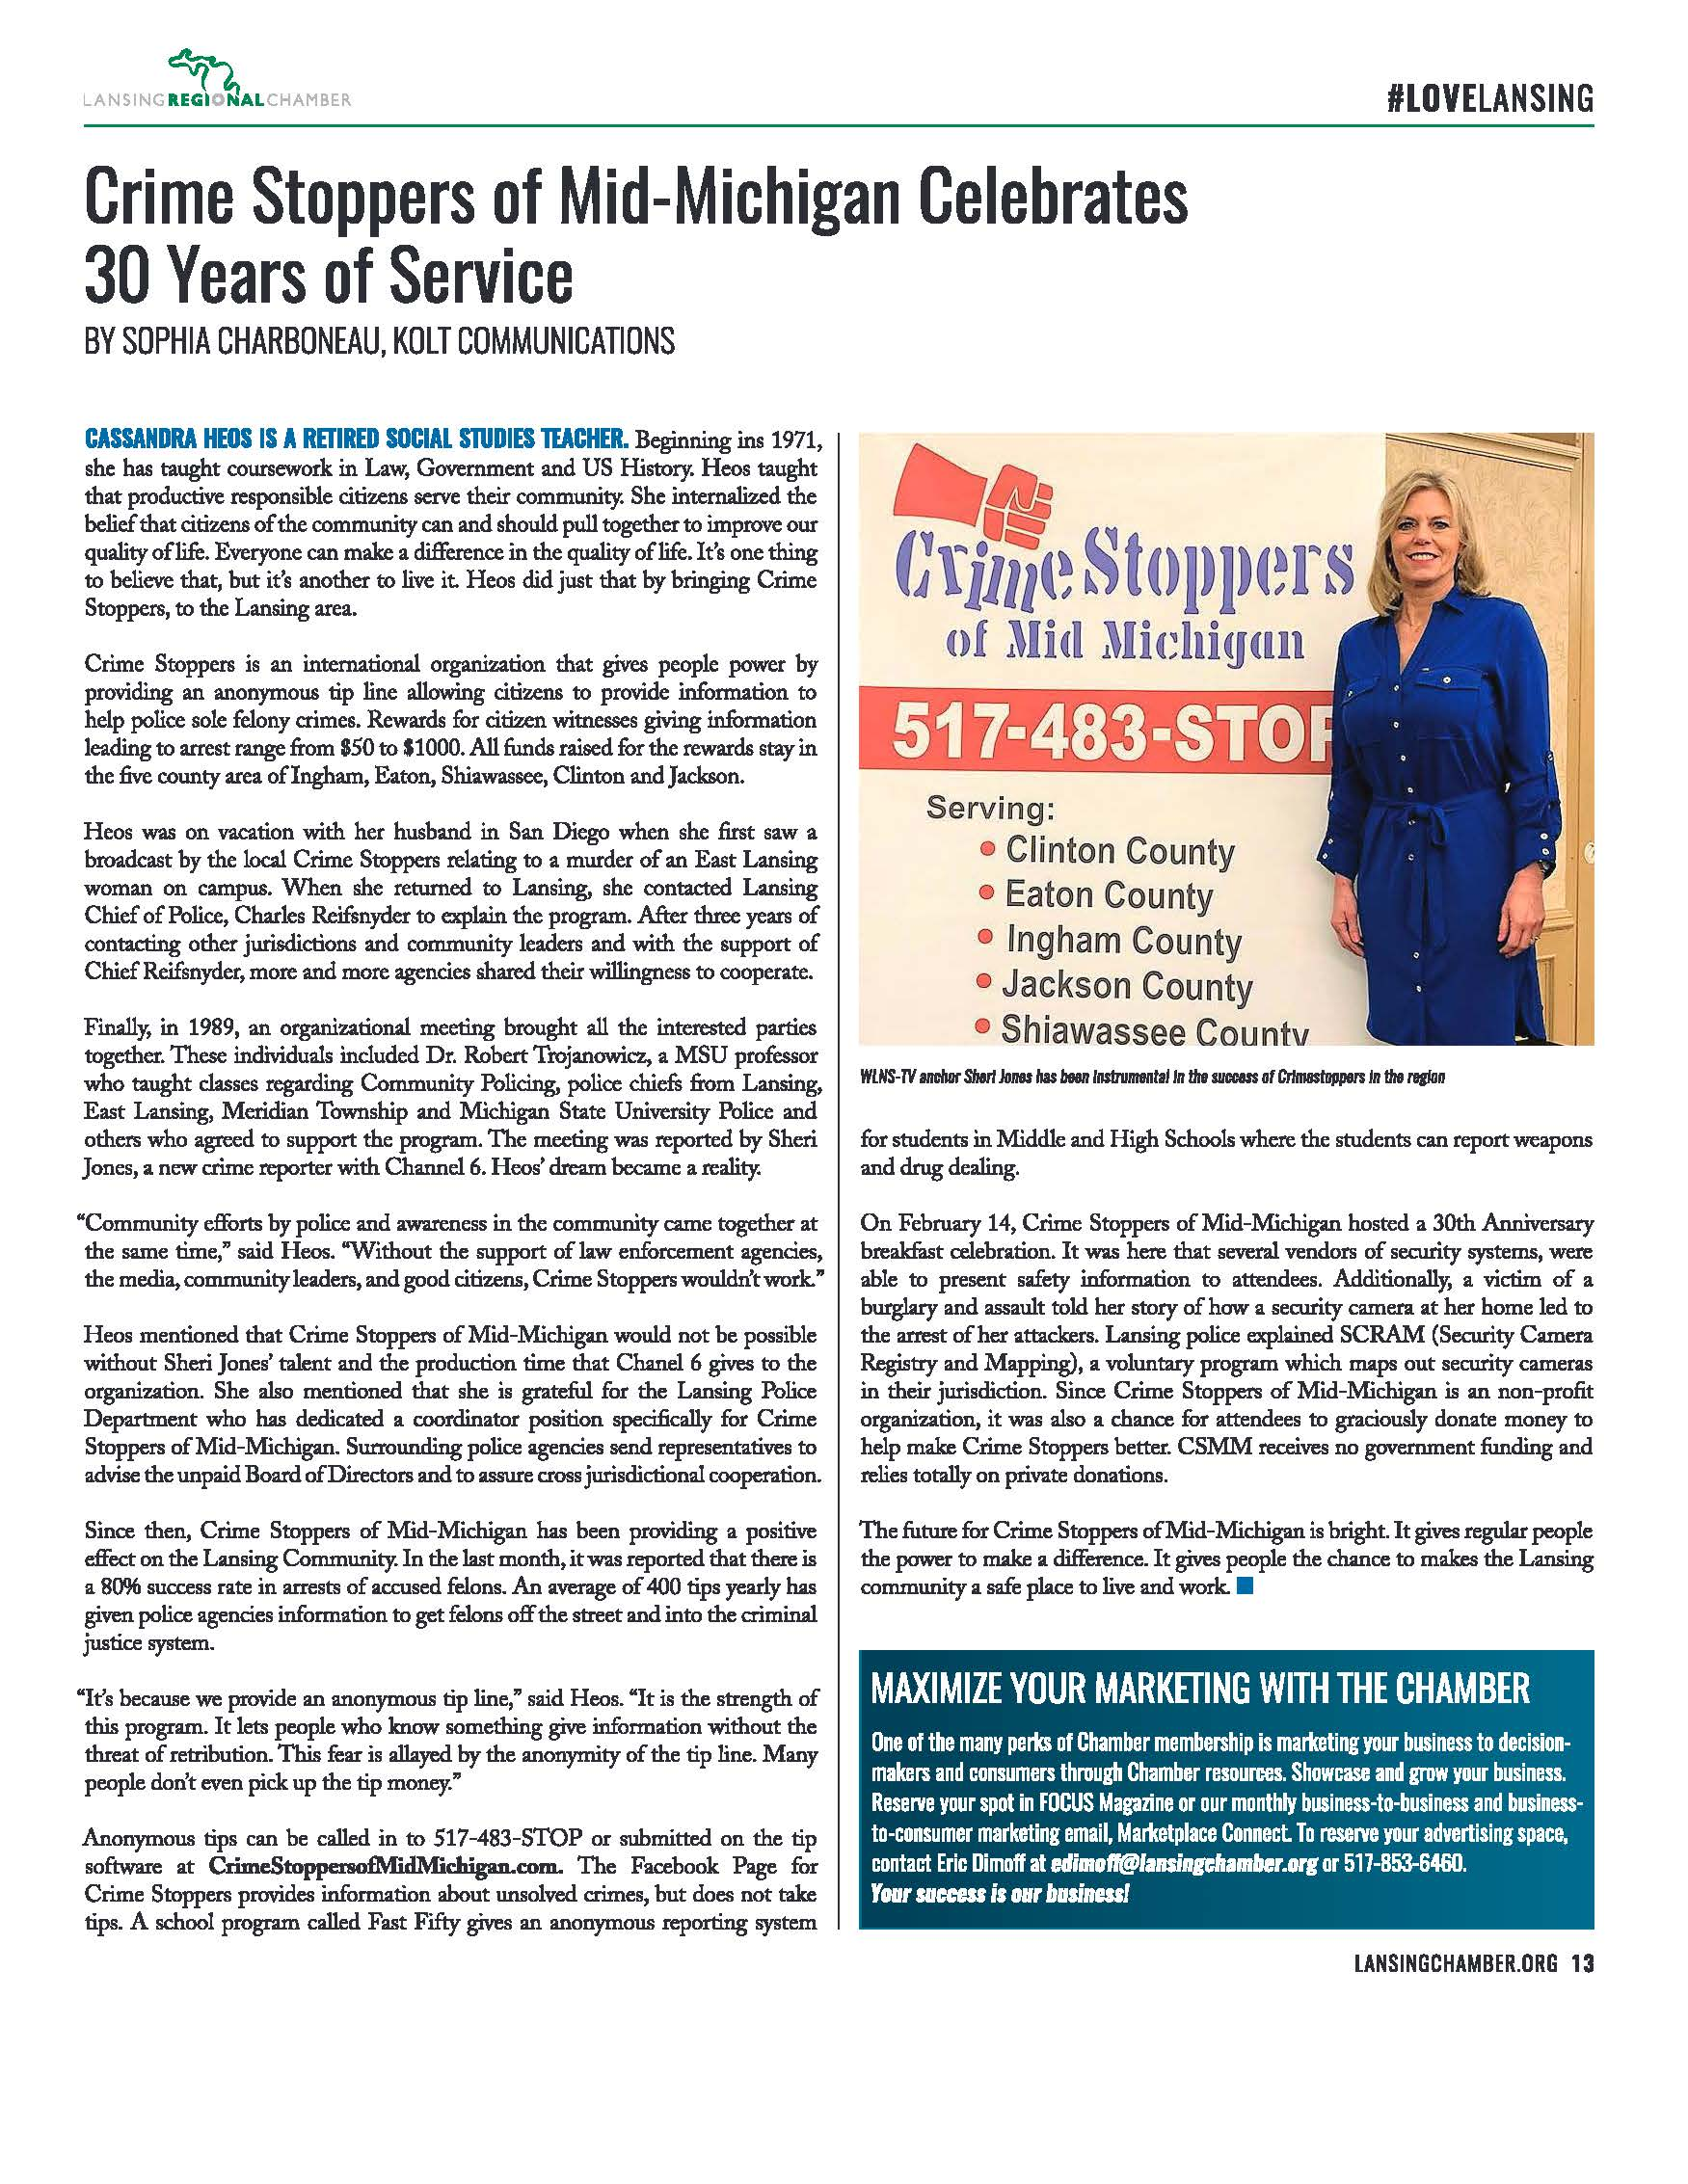 March 2019 Chamber Article